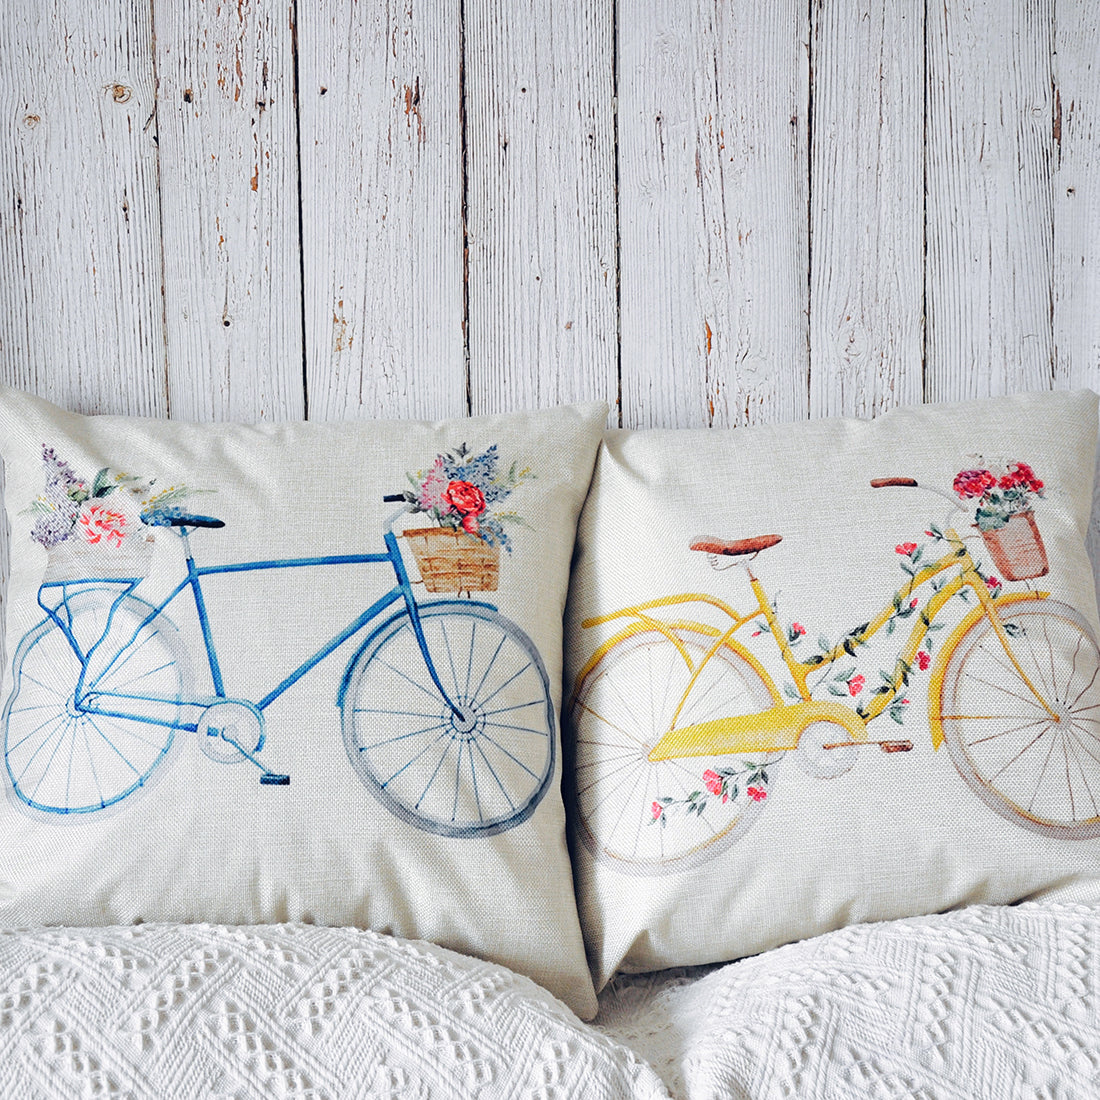 PANDICORN Set of 2 Spring Farmhouse Decorative Throw Pillows Covers, Rustic Yellow Blue Bicycle Throw Pillow Cases with Colorful Floral Pattern for Outdoor Couch Porch, 18 x 18 Inch